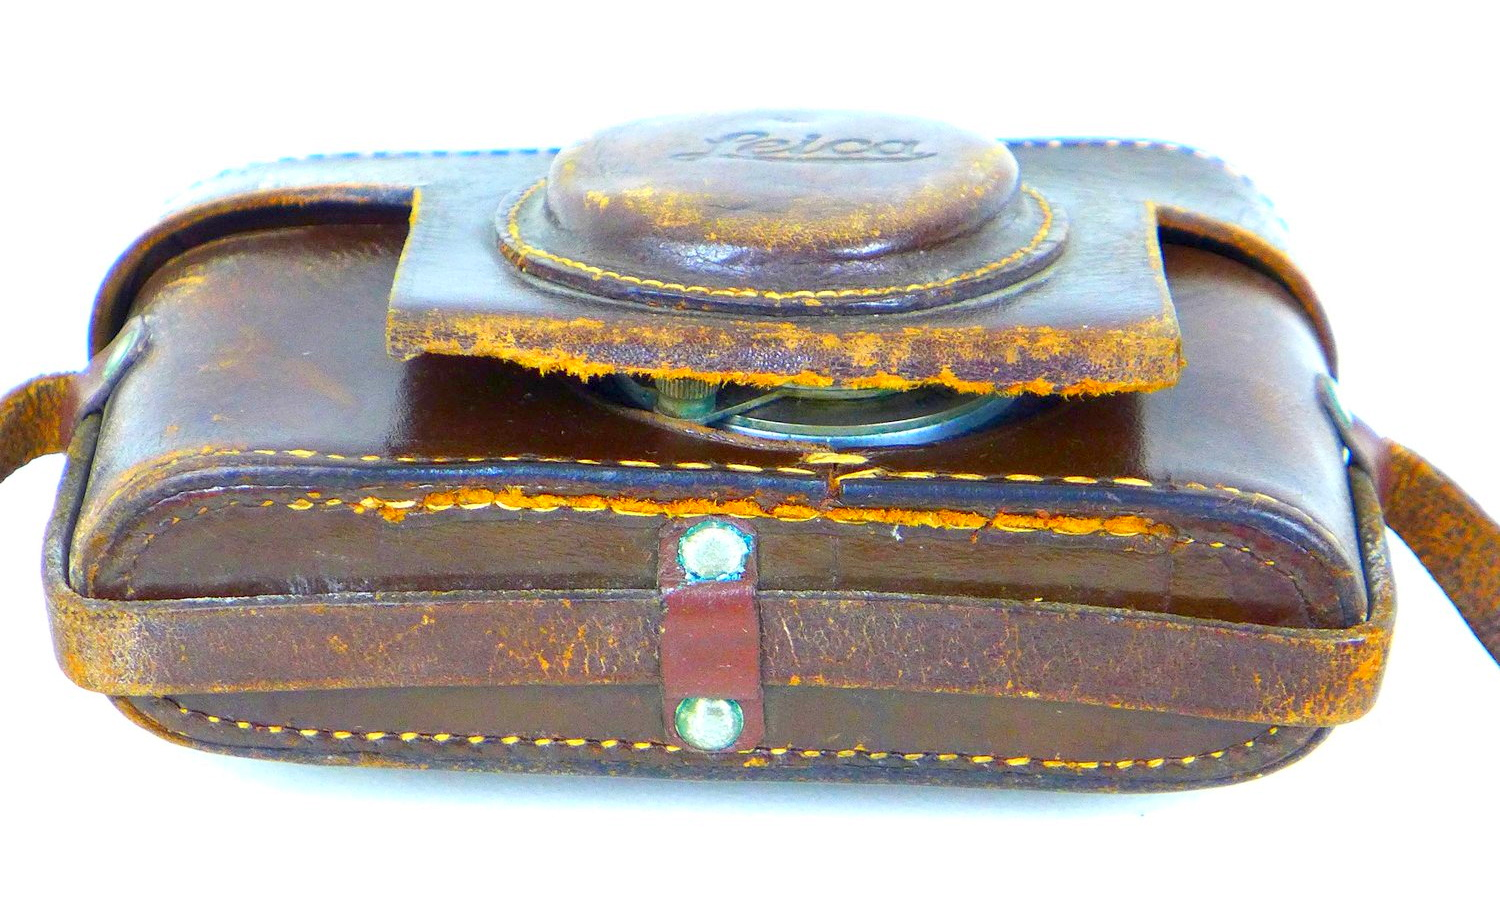 A vintage 1930s Leica camera, with Leitz Elmar 1:3.5 f=50mm lens, serial no. 168496, with chrome and - Image 8 of 8